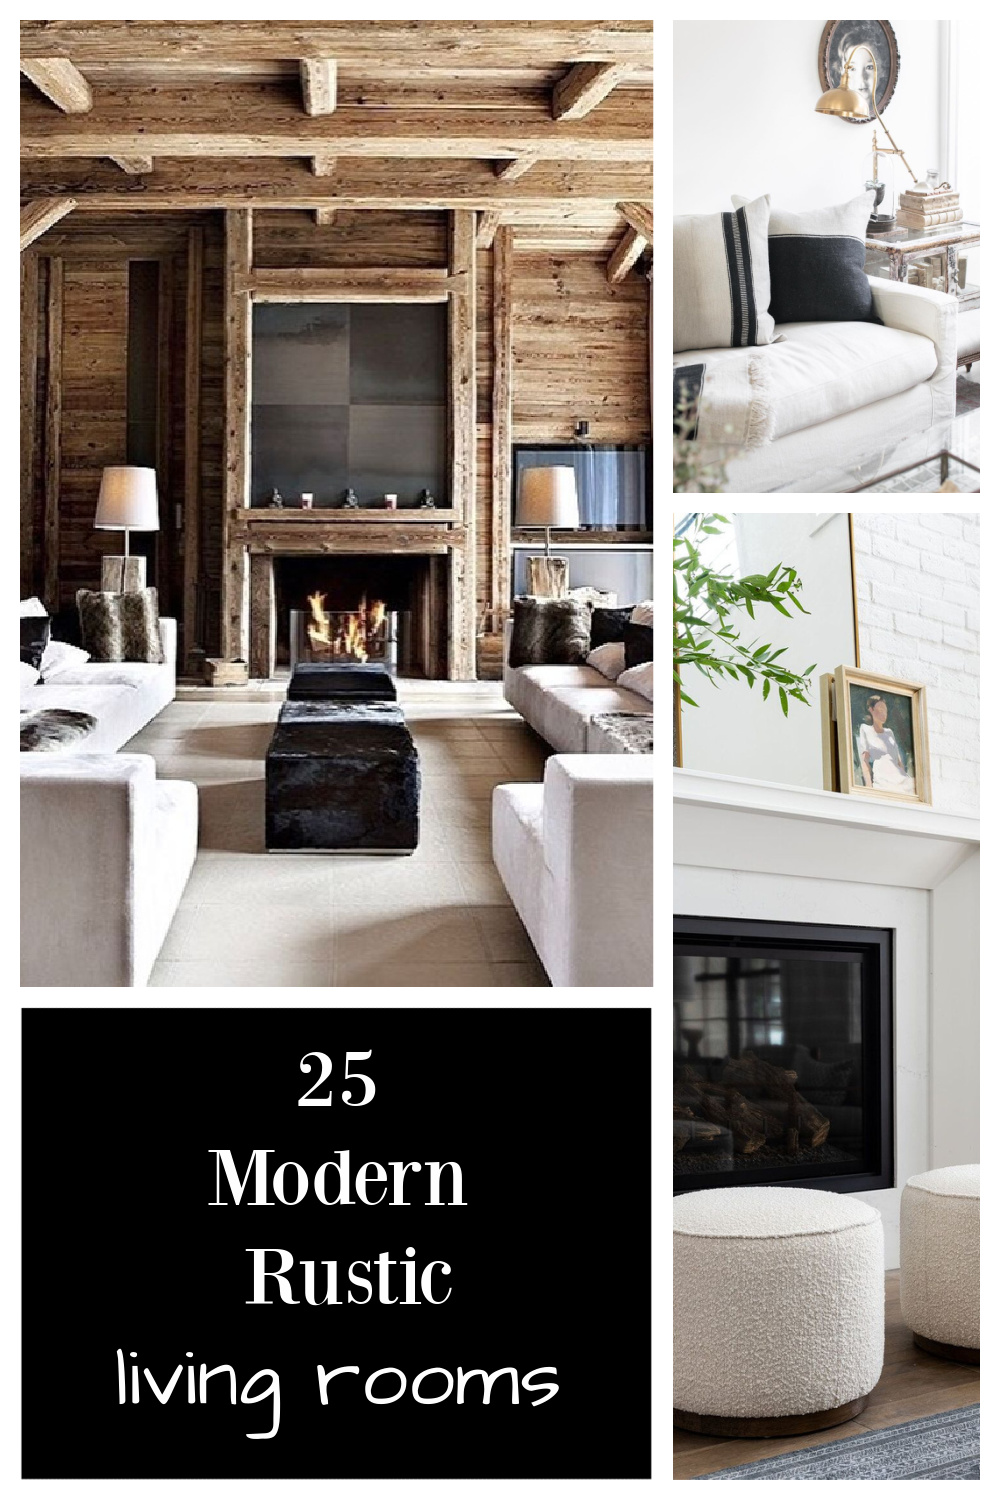 25 Modern Rustic Living Rooms - come be inspired by these gorgeous interiors on Hello Lovely. #modernrustic #livingrooms #interiordesign #getthelook